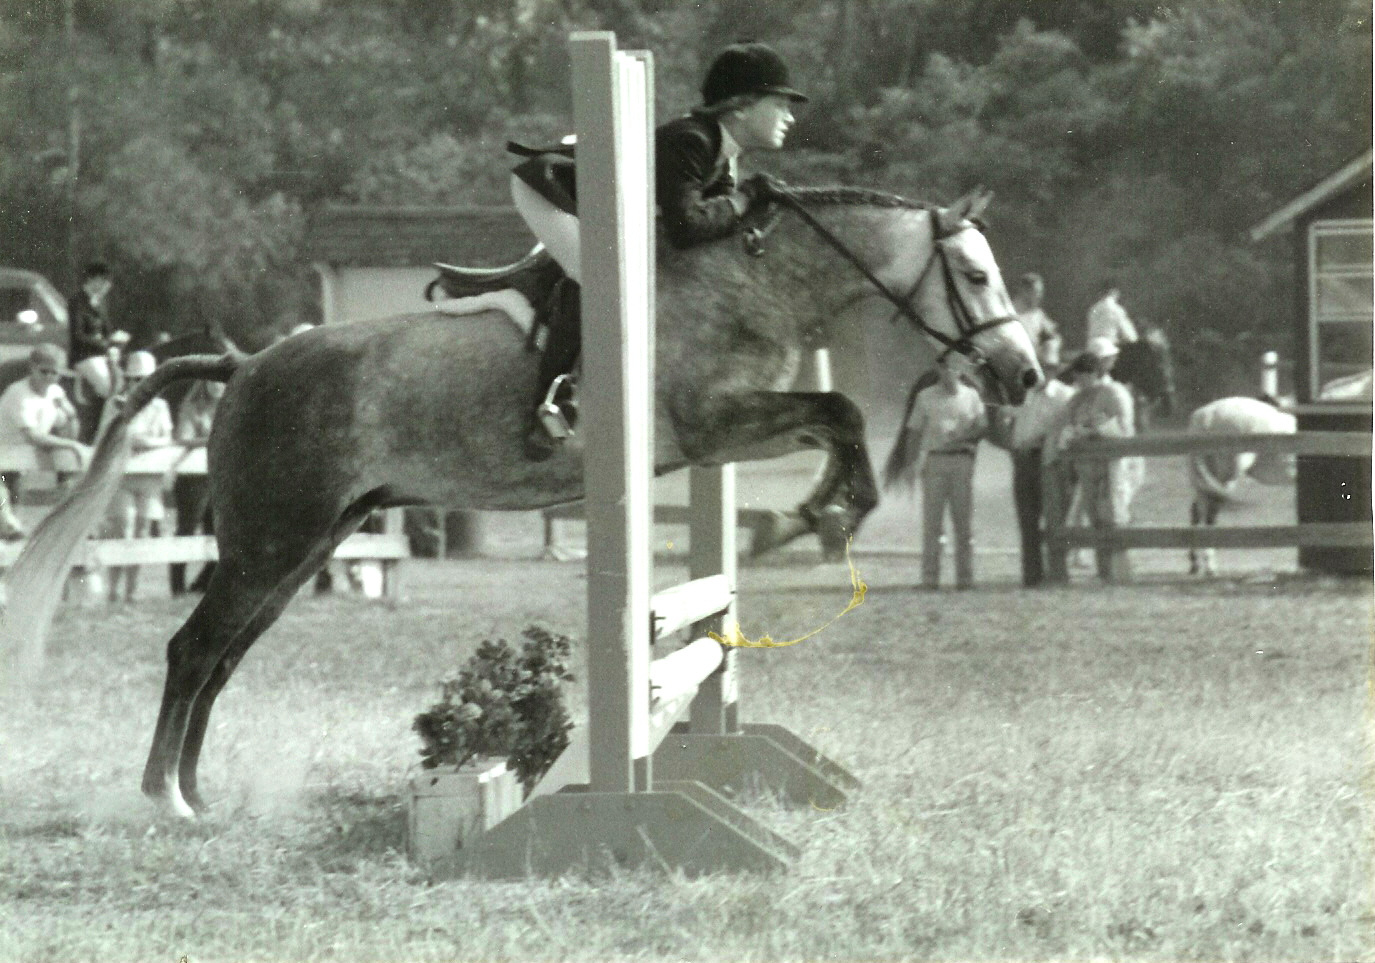 Pinchacre Penifore & Molly Ashe in 1984 at the John Rush horse show in Aiken, SC